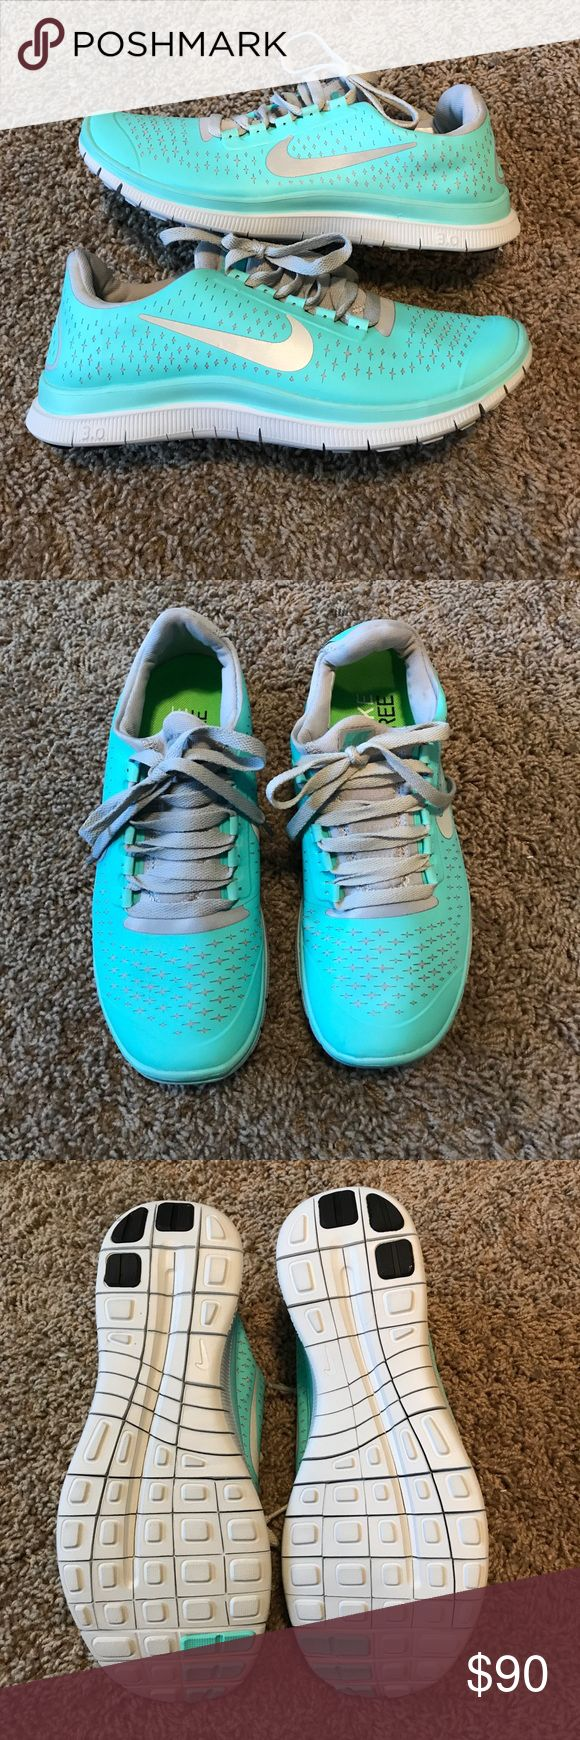 Tiffany Blue Nike free run 3.0 These shoes are gorgeous!!! They are a little too small for me so I never wore them, but wish I could've!!! Nike Shoes Athletic Shoes